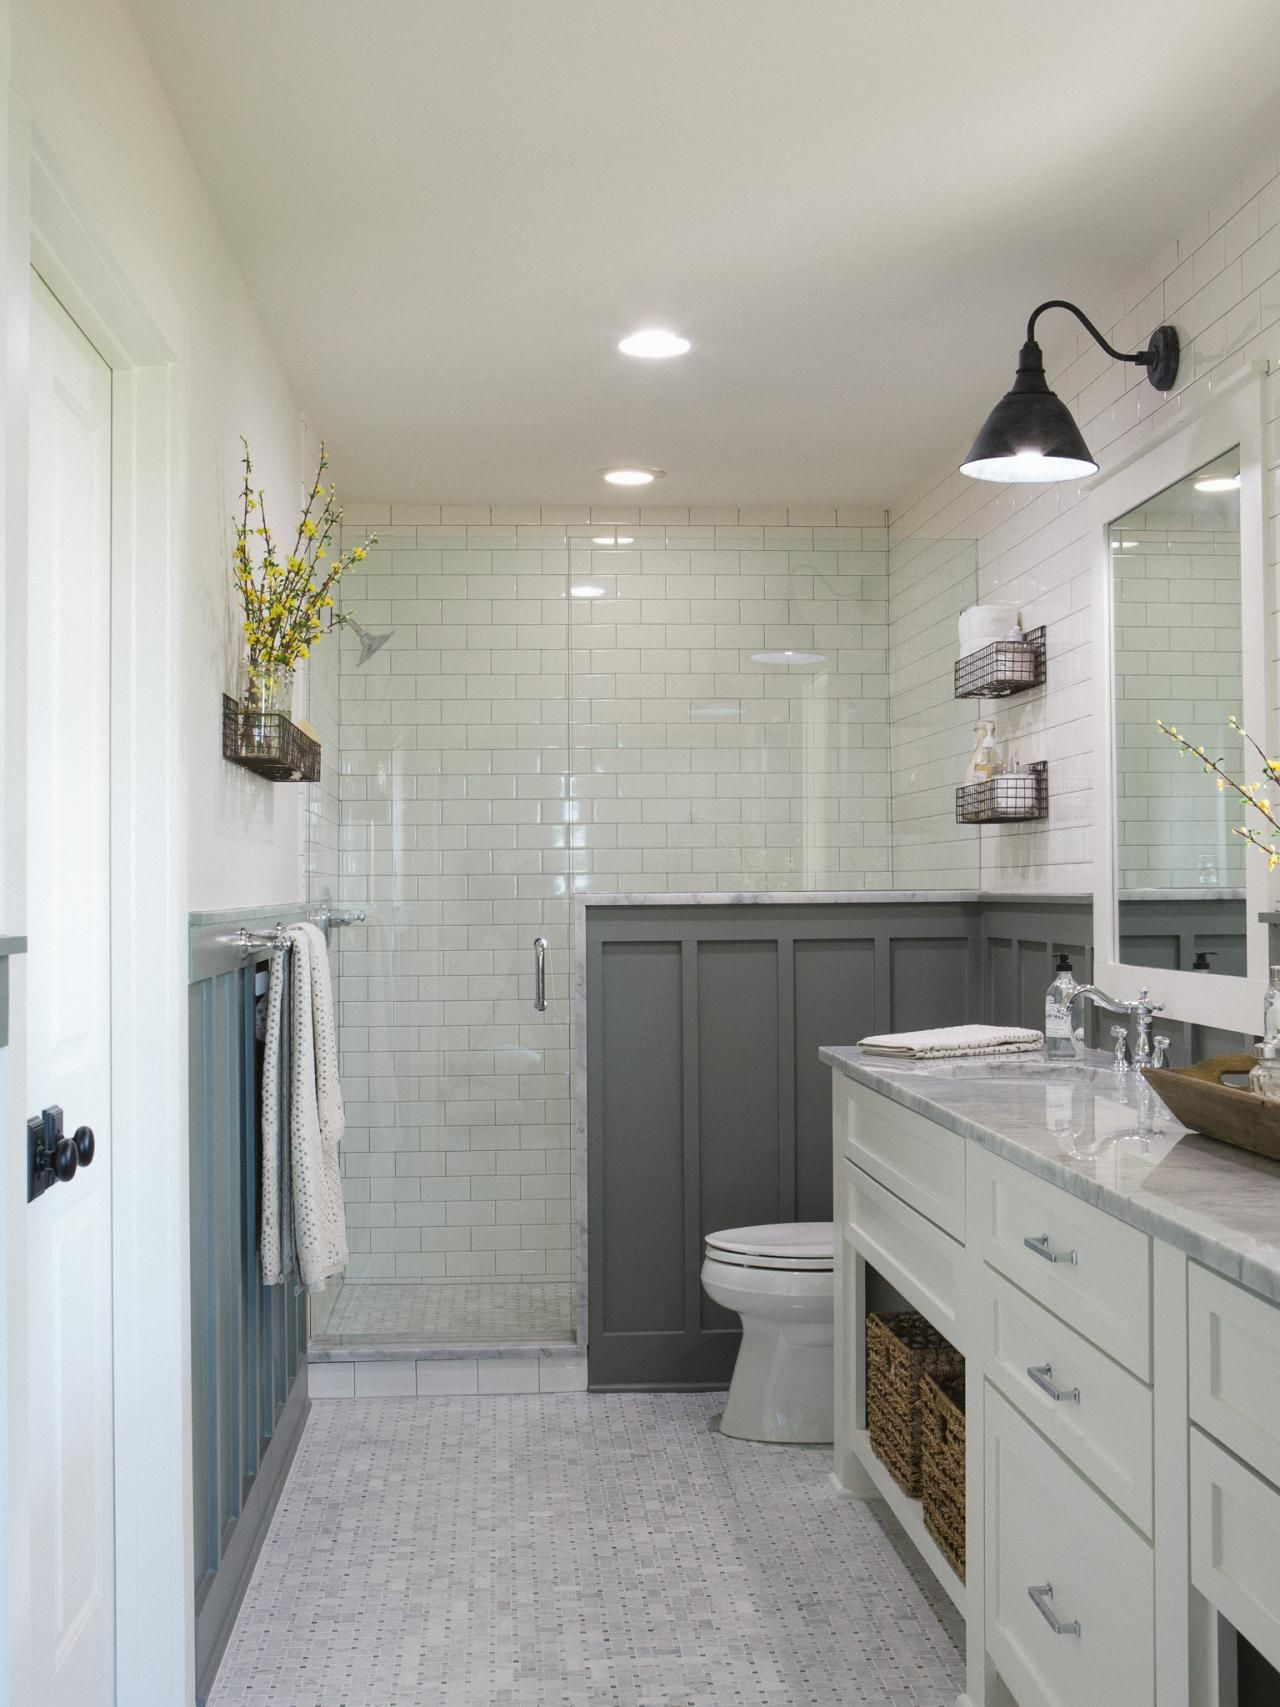 Basement Bathroom Ideas On Budget, Low Ceiling and For Small Space ...